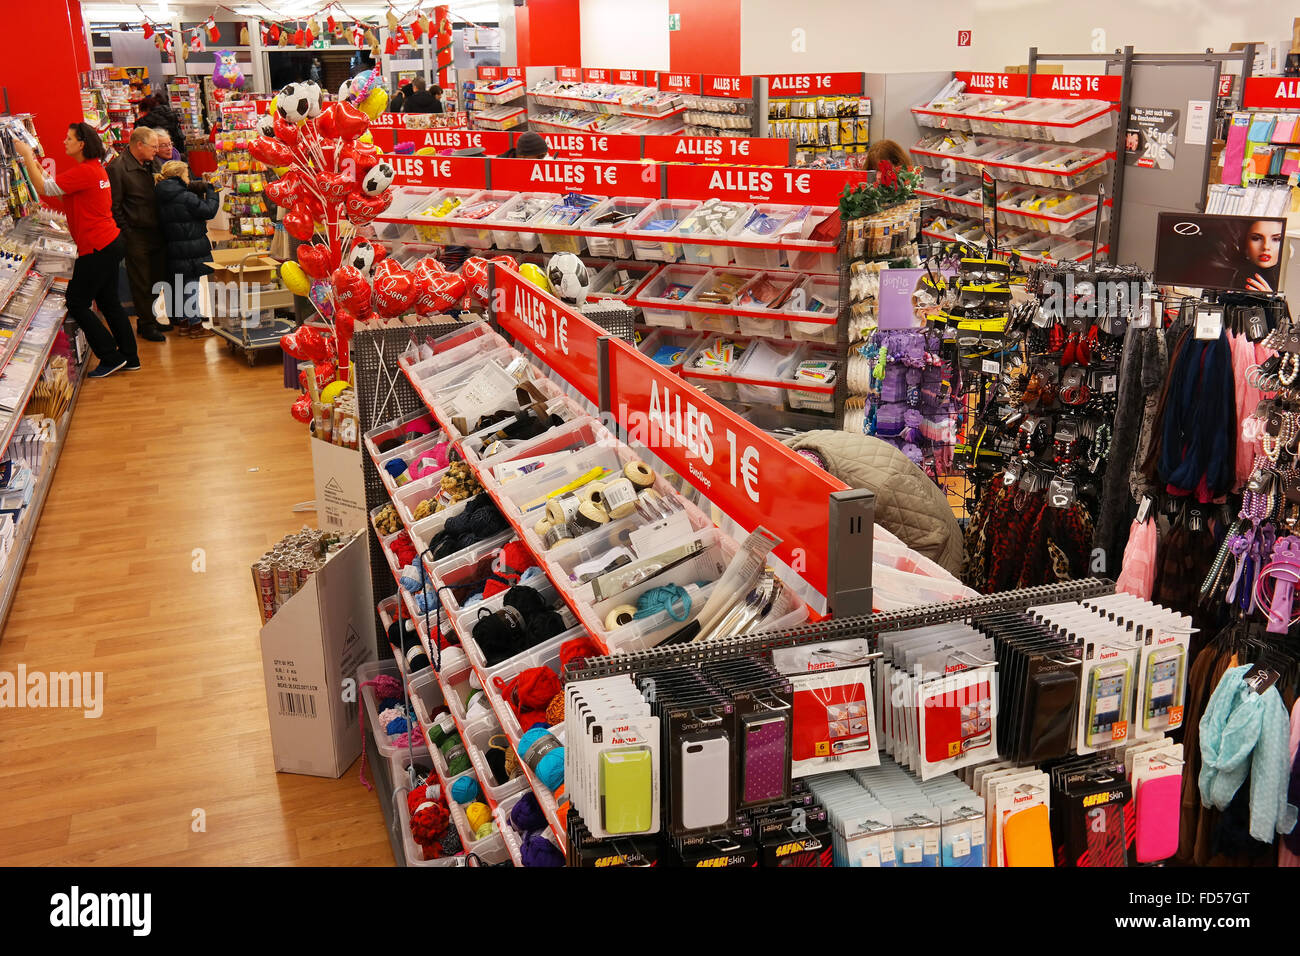 Alles 1€ in the One euro shop - Stock Image